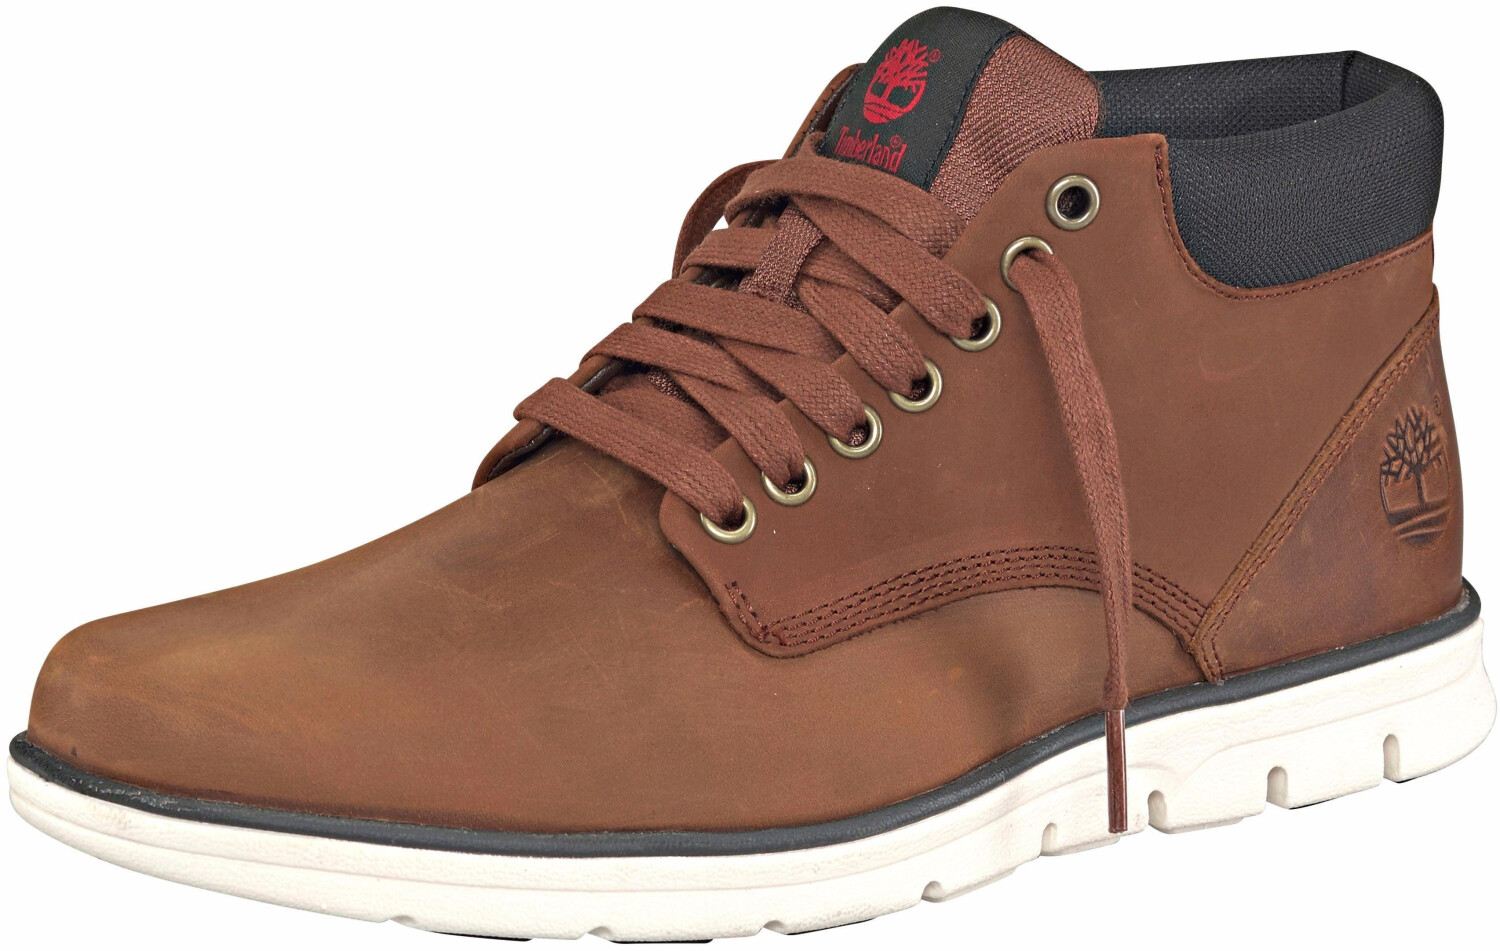 chaussures timberland hommes boma blan